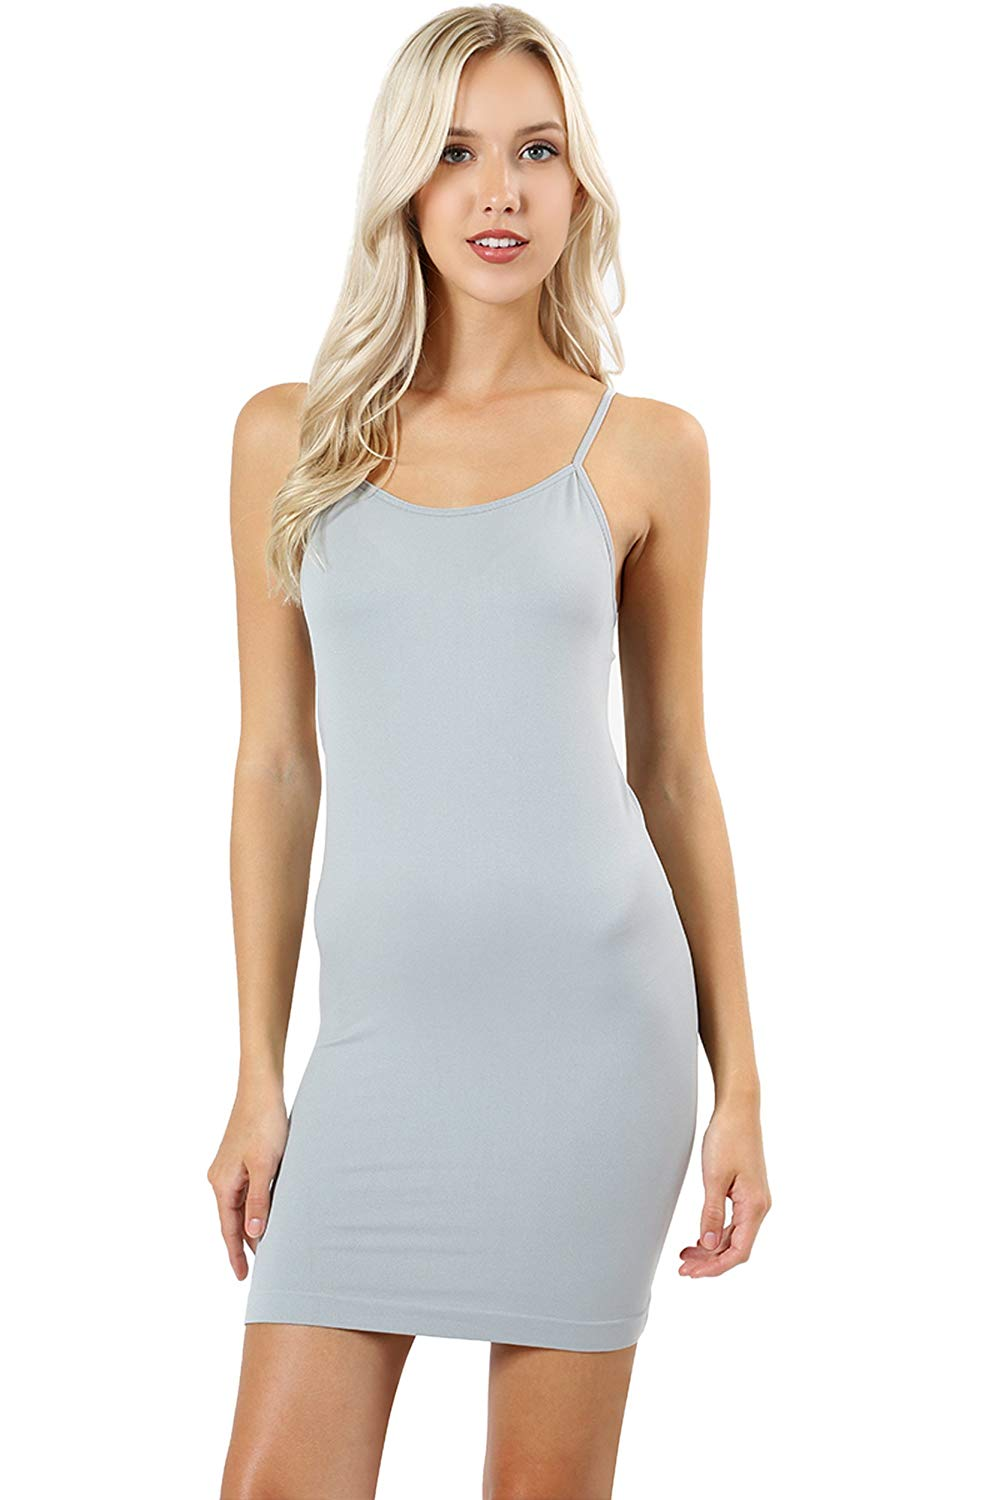 f80e670f93c71 Get Quotations · LAB 301 Women's Essential Seamless Stretchable Slip Dress  with Adjustable Strap